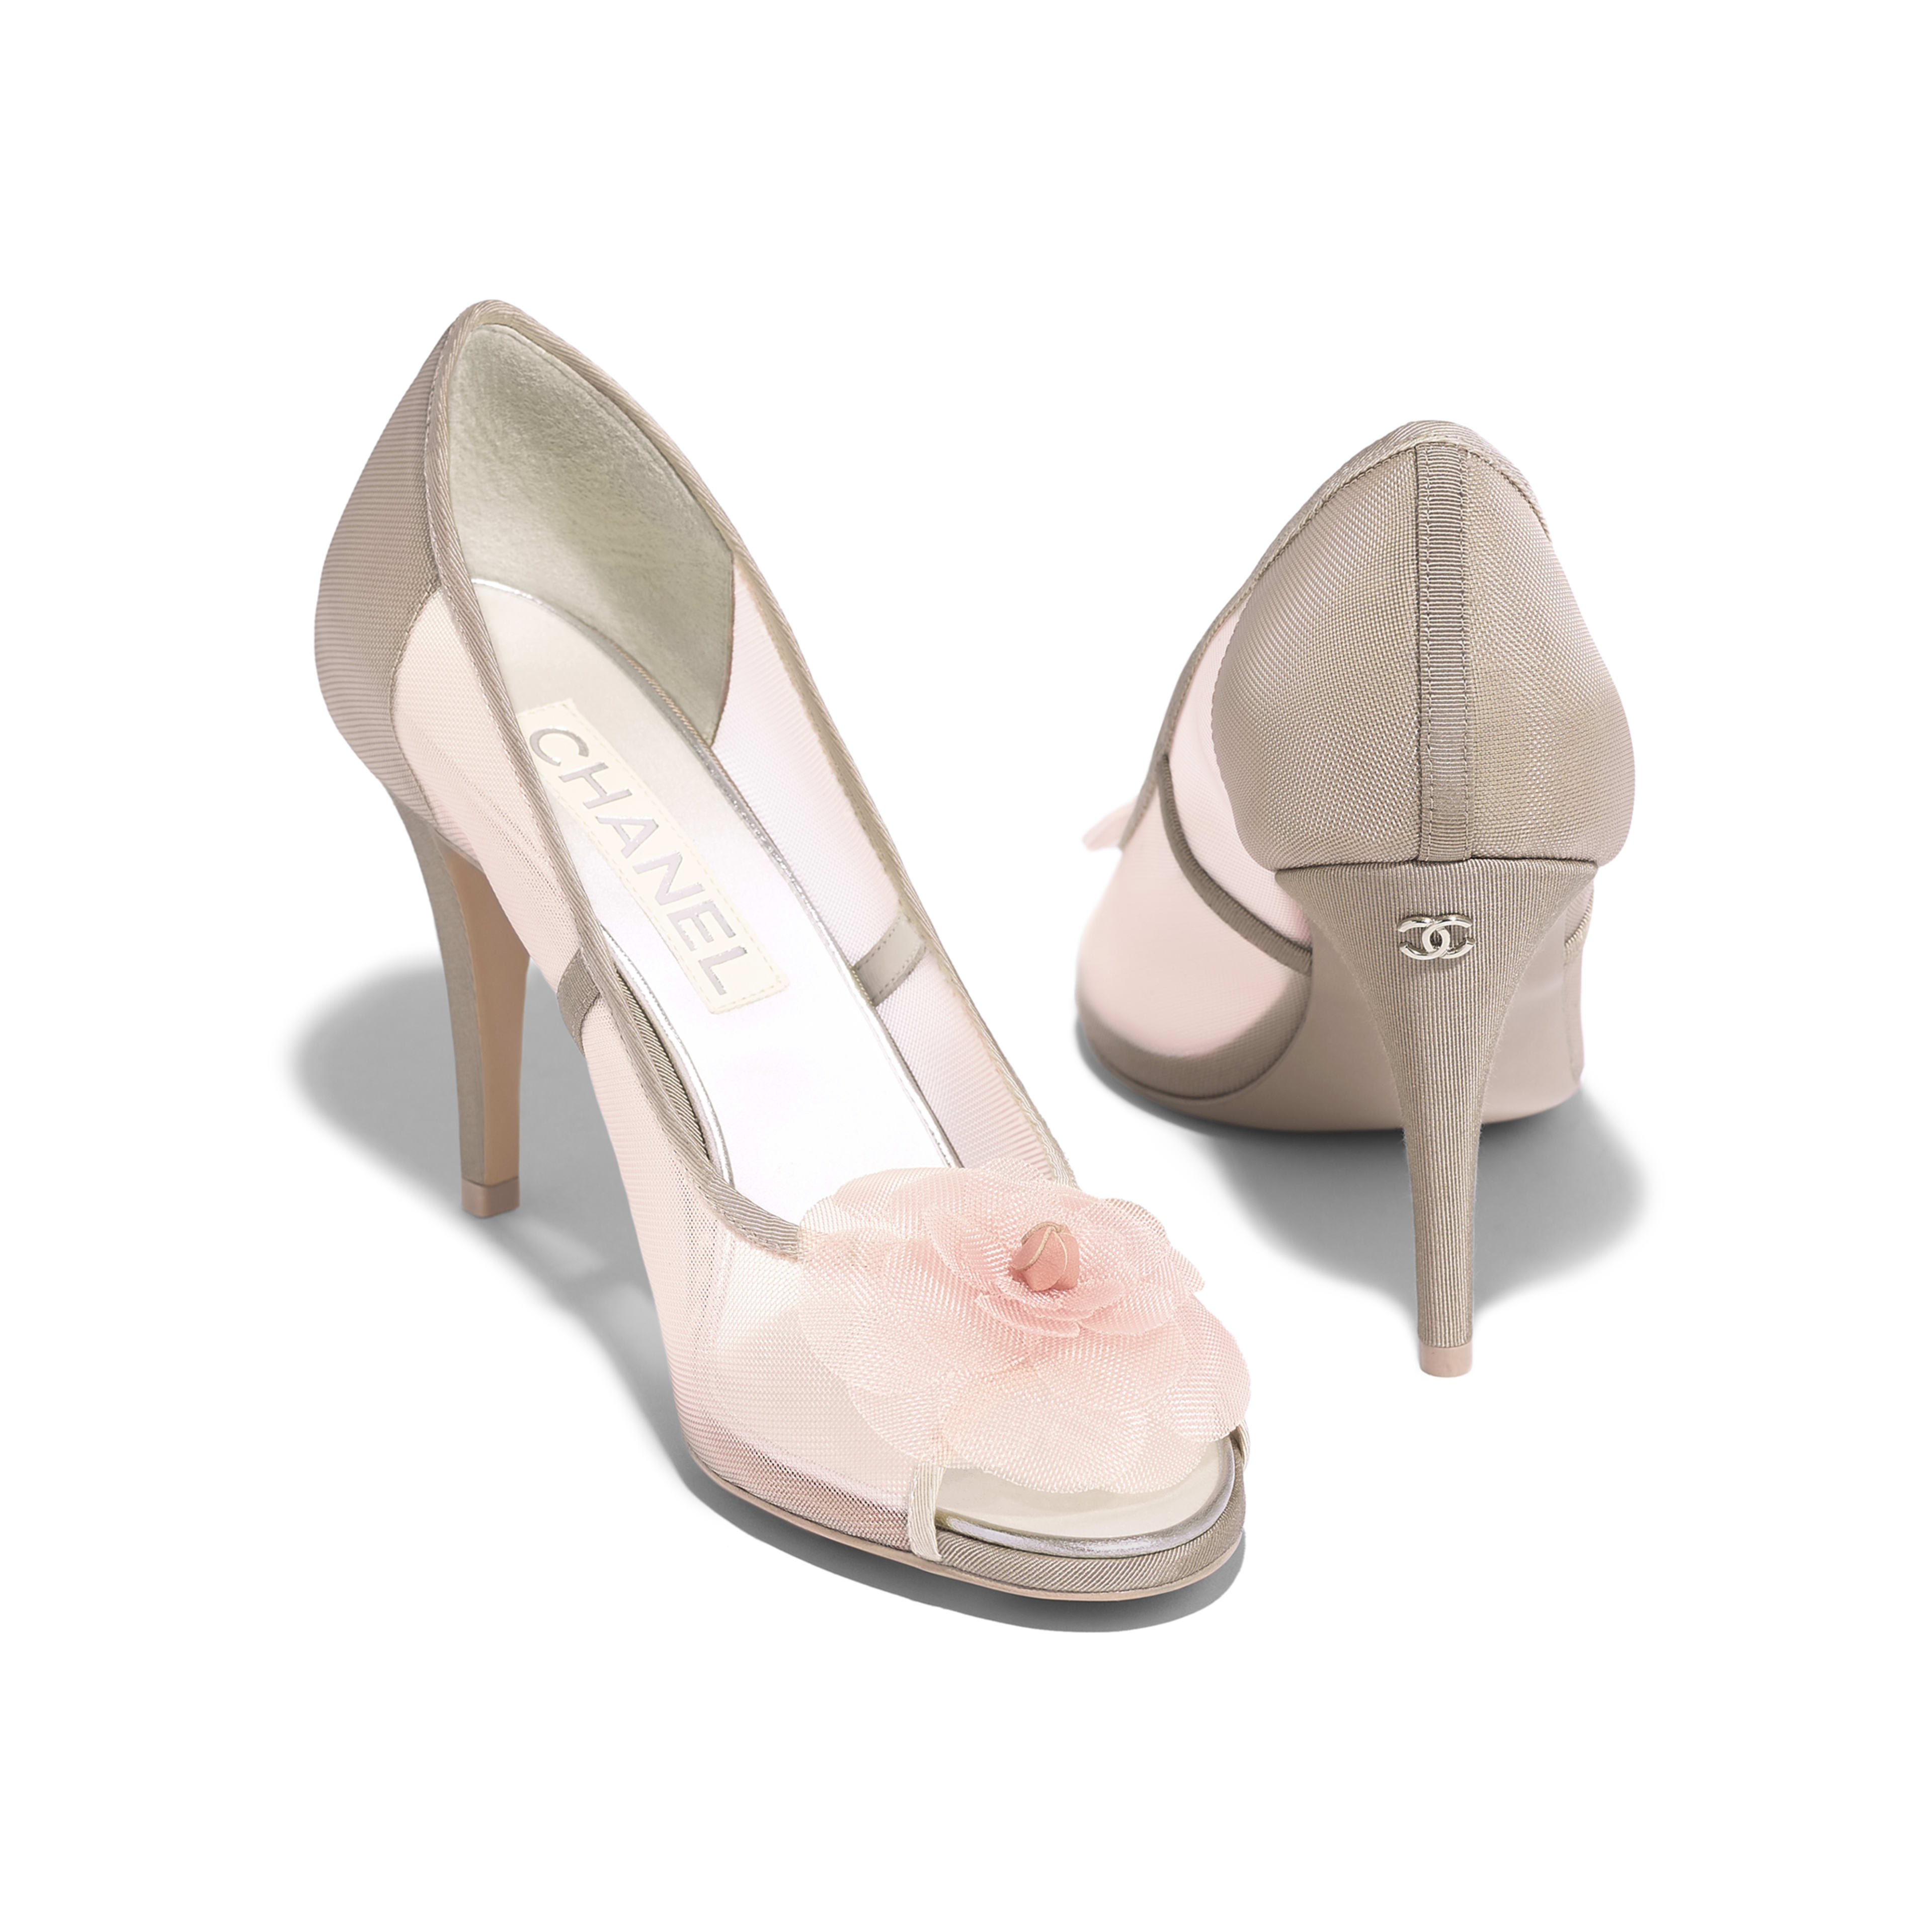 Pumps - Pink & Beige - Mesh & Grosgrain - Other view - see full sized version